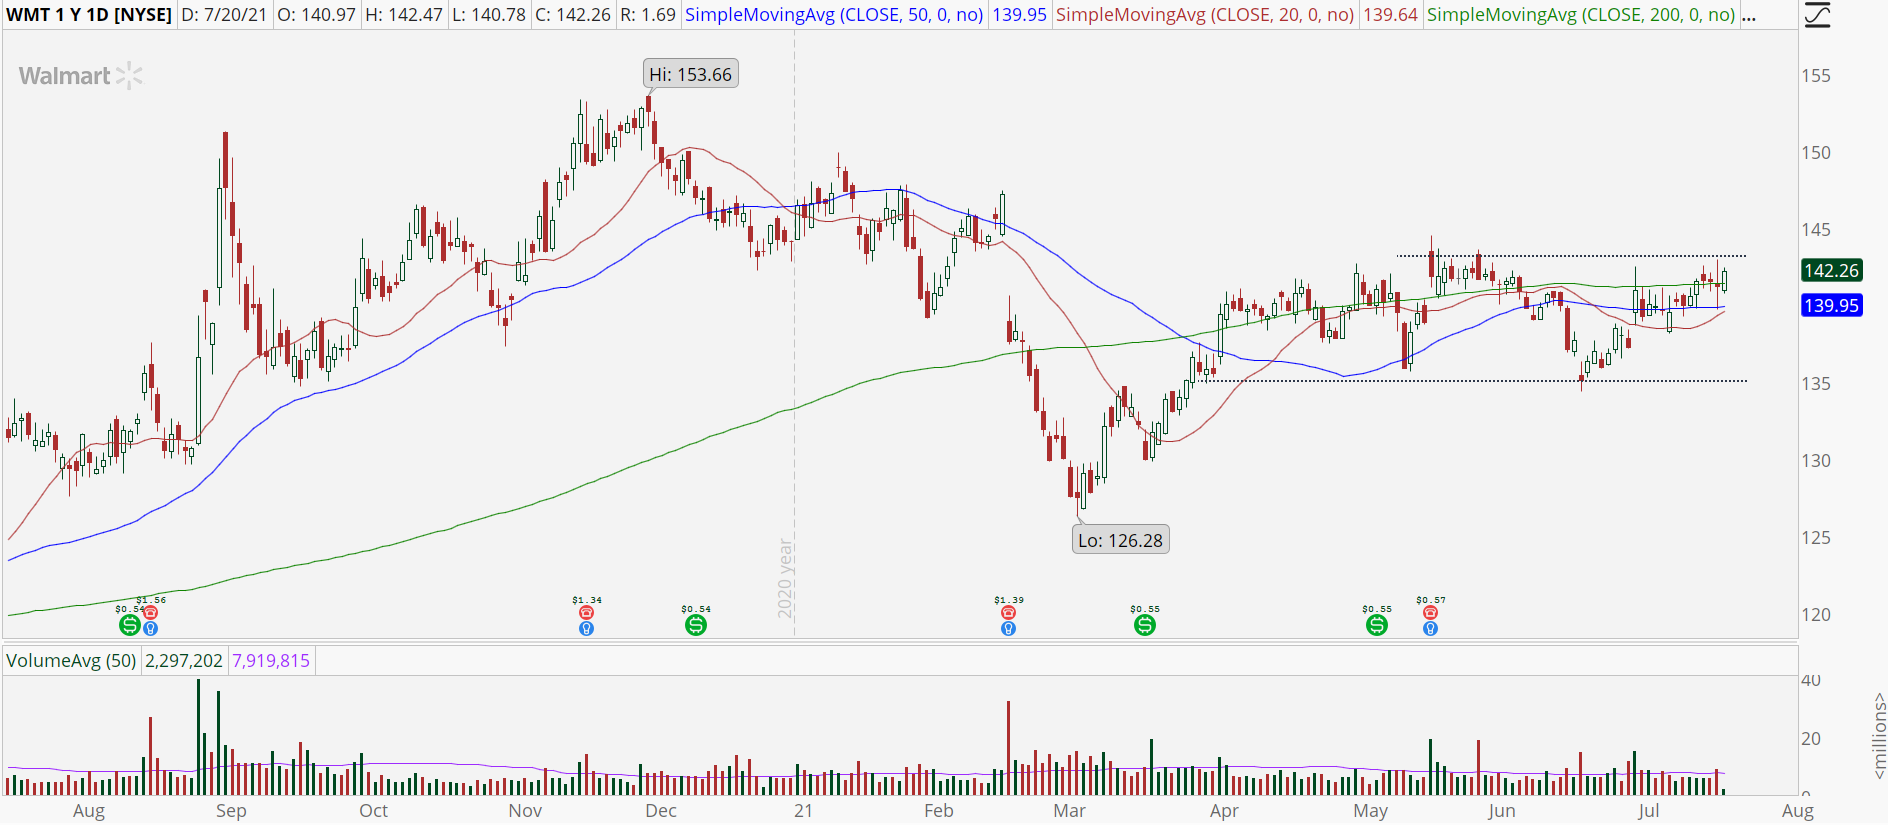 Walmart (WMT) daily stock chart with trading range